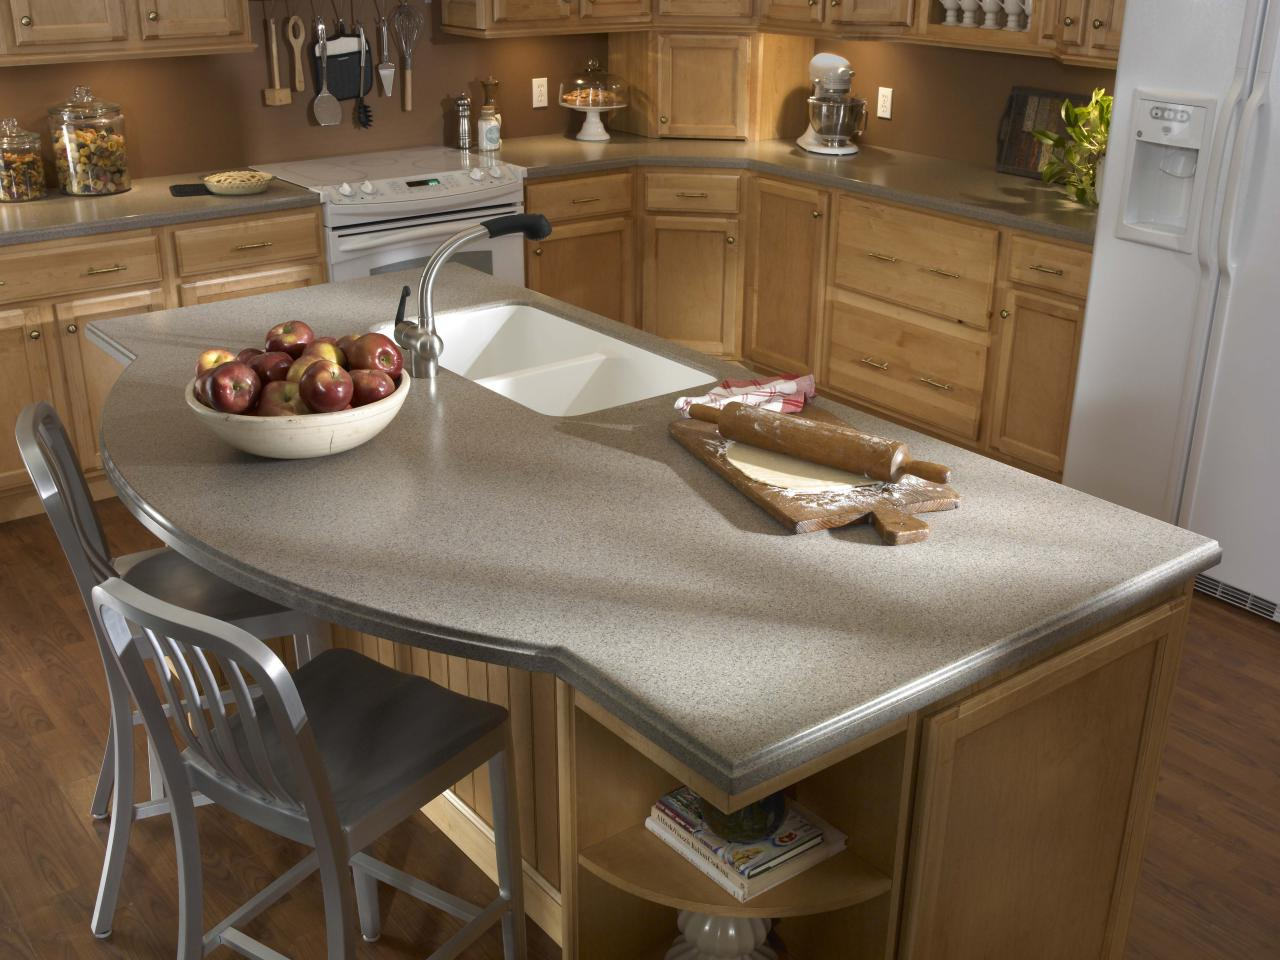 projects solid countertops kitchen buying and guide surface countertop bg dining project